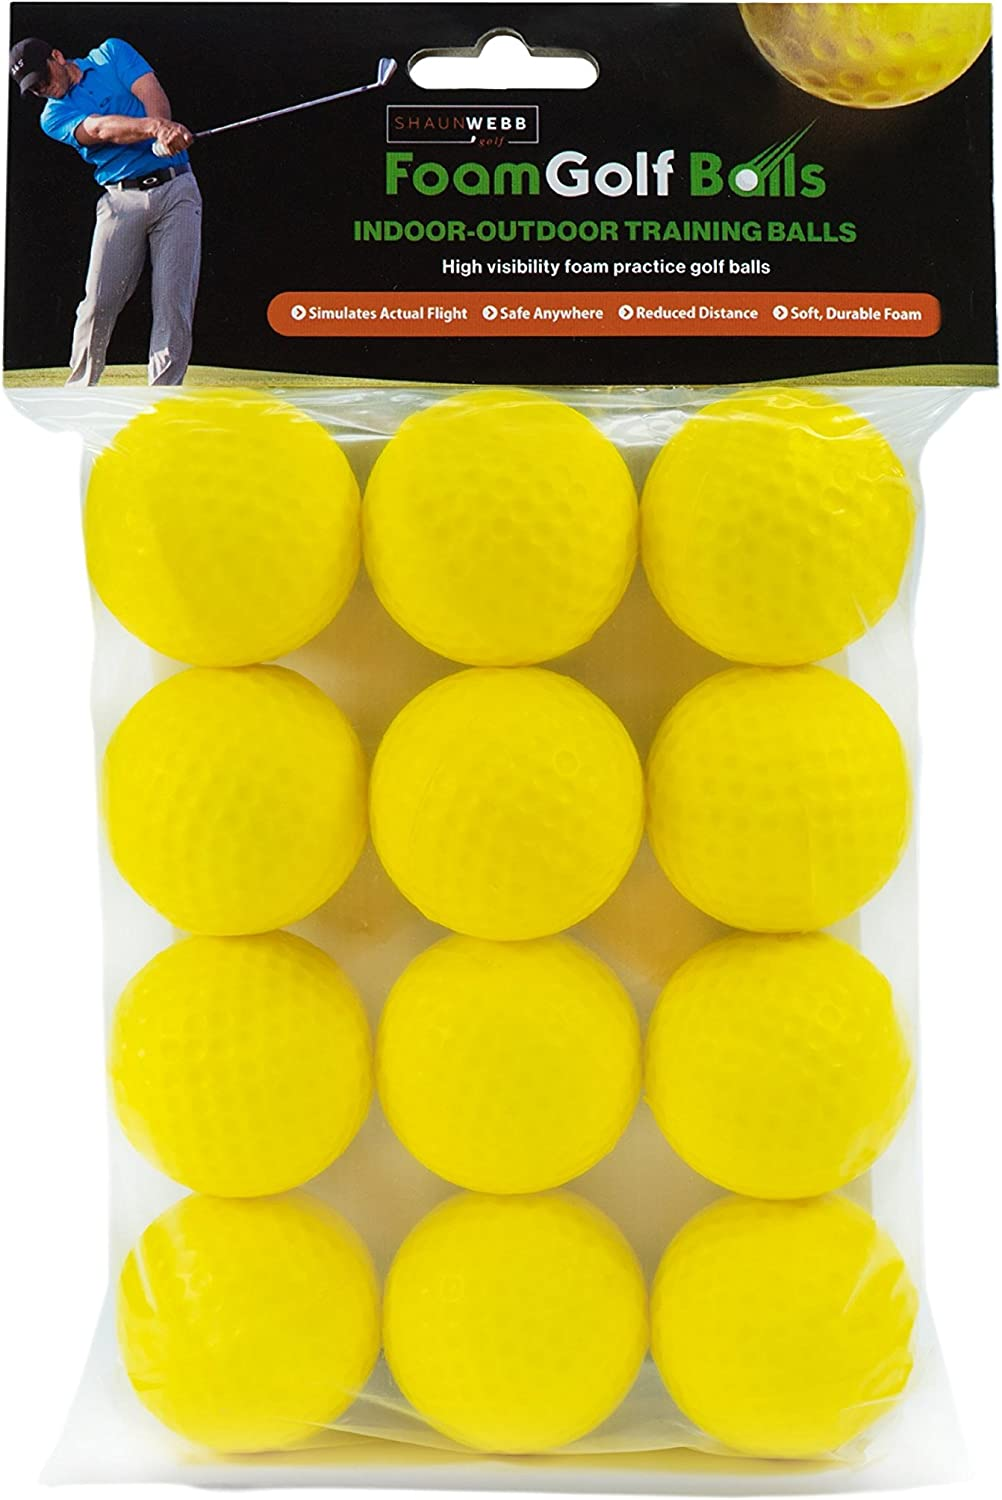 SHAUN WEBB Soft Golf Balls Pack of 12 Yellow Foam Practice Balls Dent Resistant, Long Lasting, Limited Flight – Perfect for Home and Office.